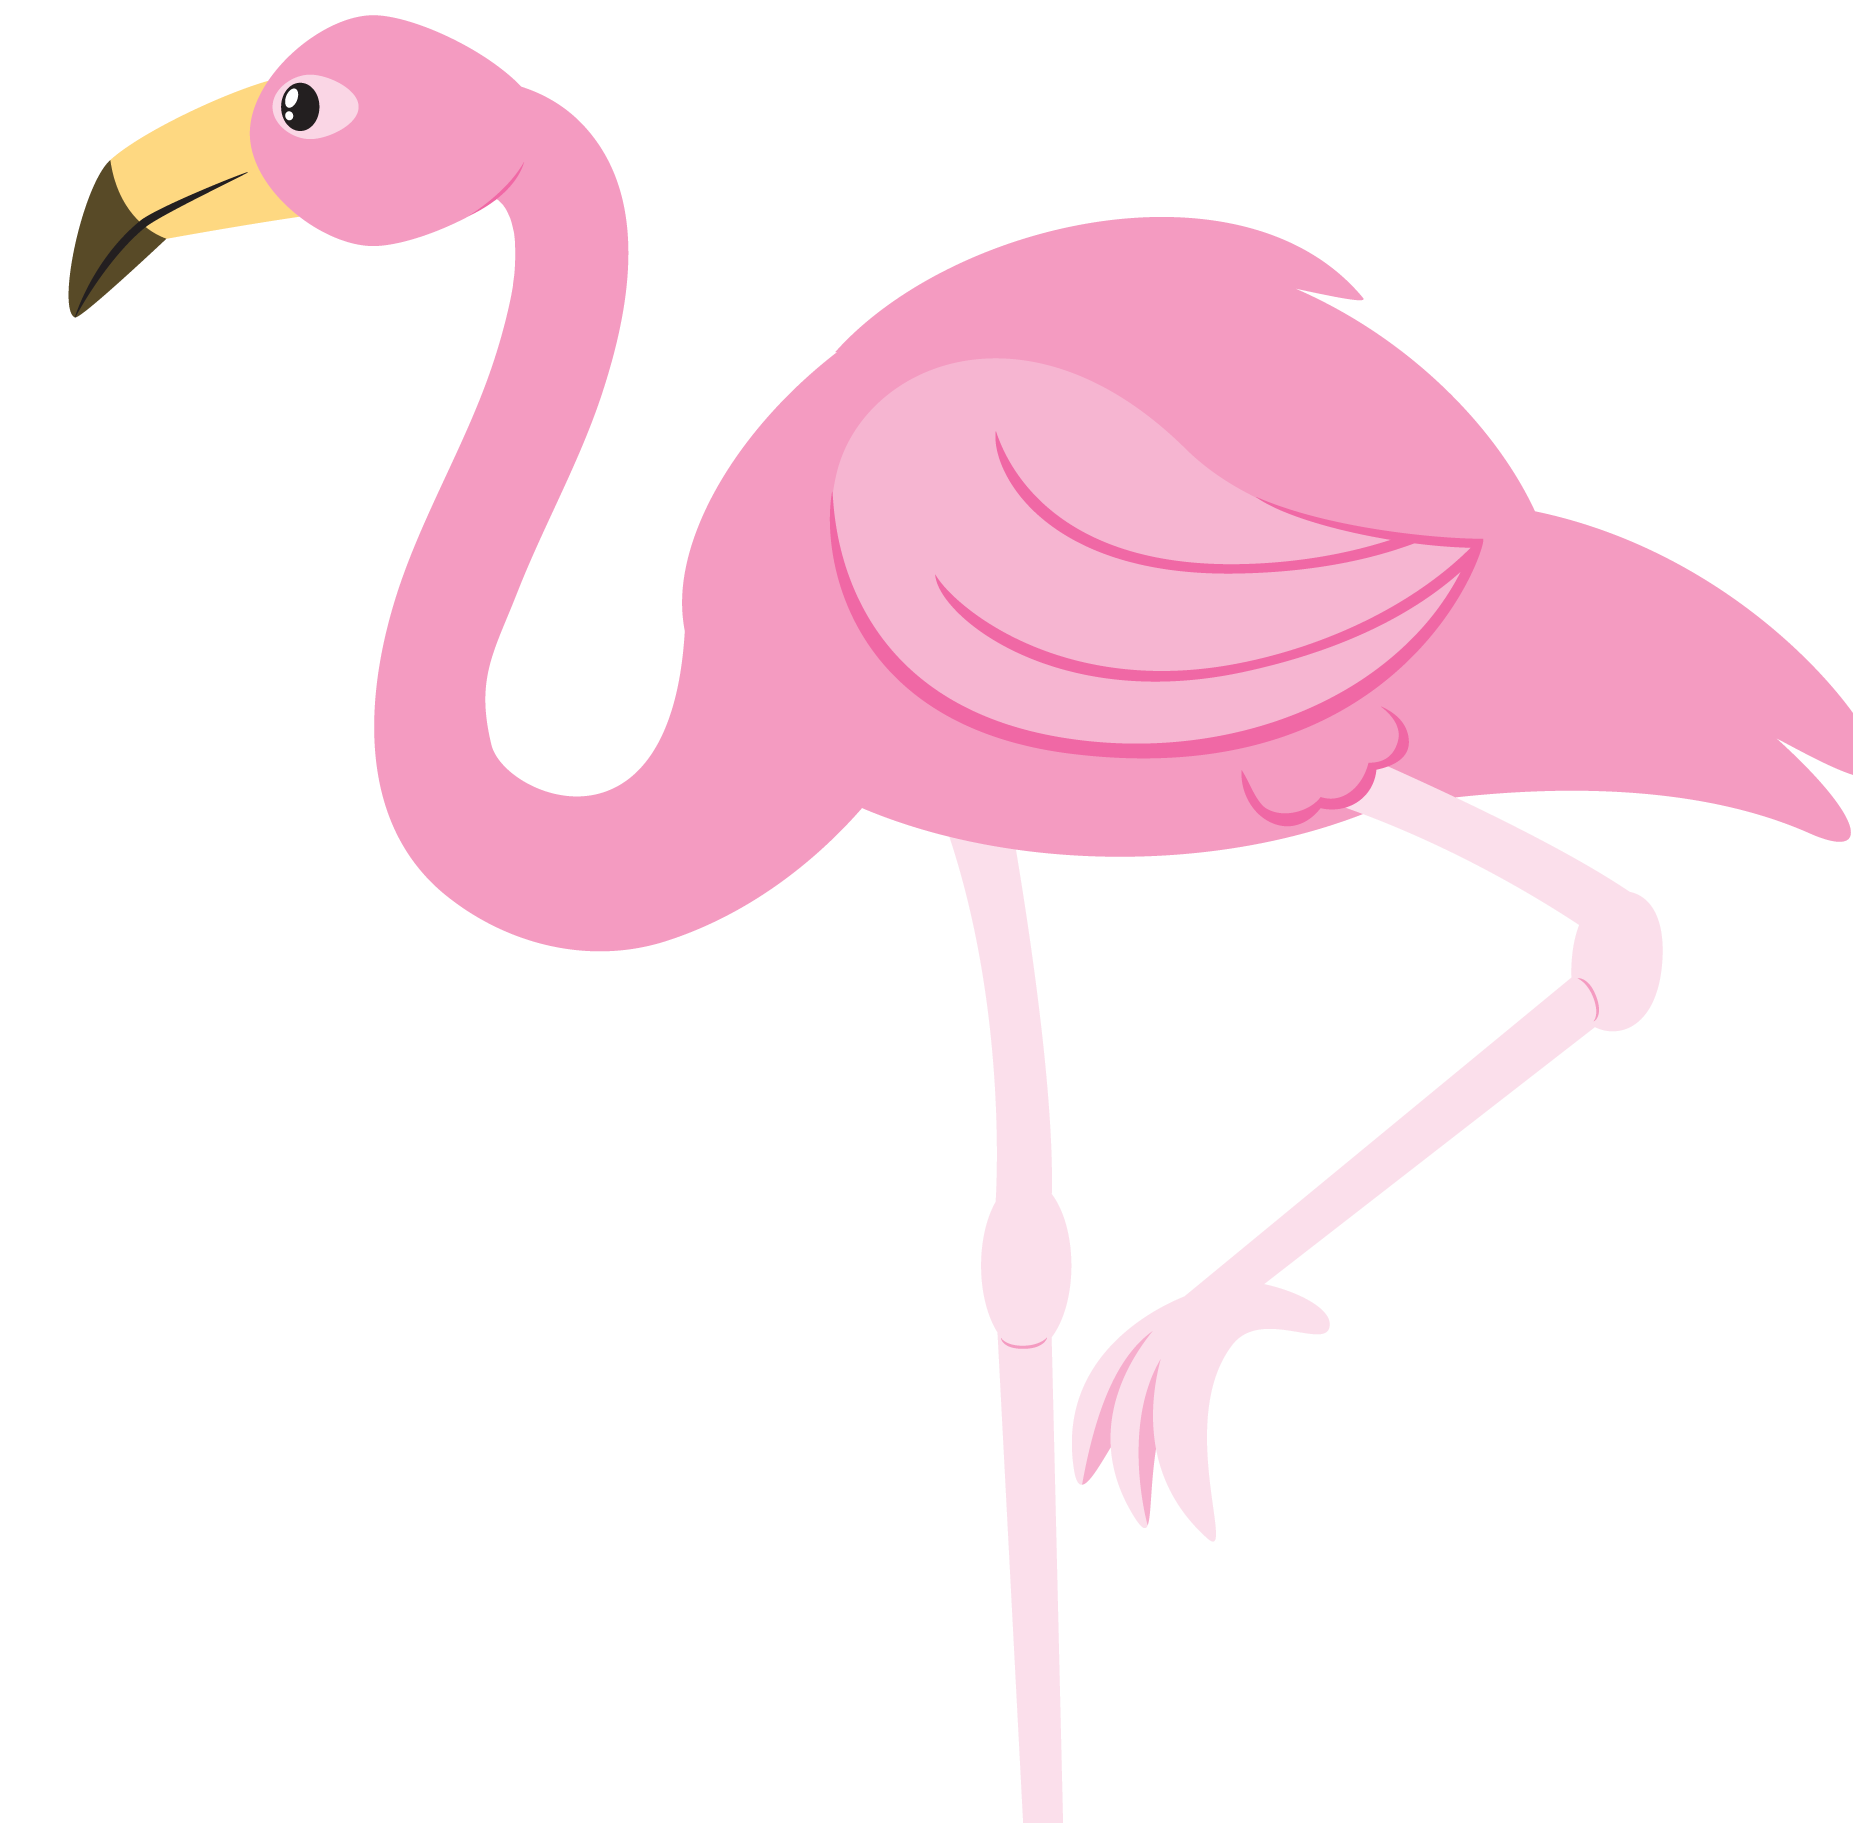 flamingo clip art saferbrowser yahoo image search results pool rh pinterest ie flamingo clip art black and white flamingo clipart